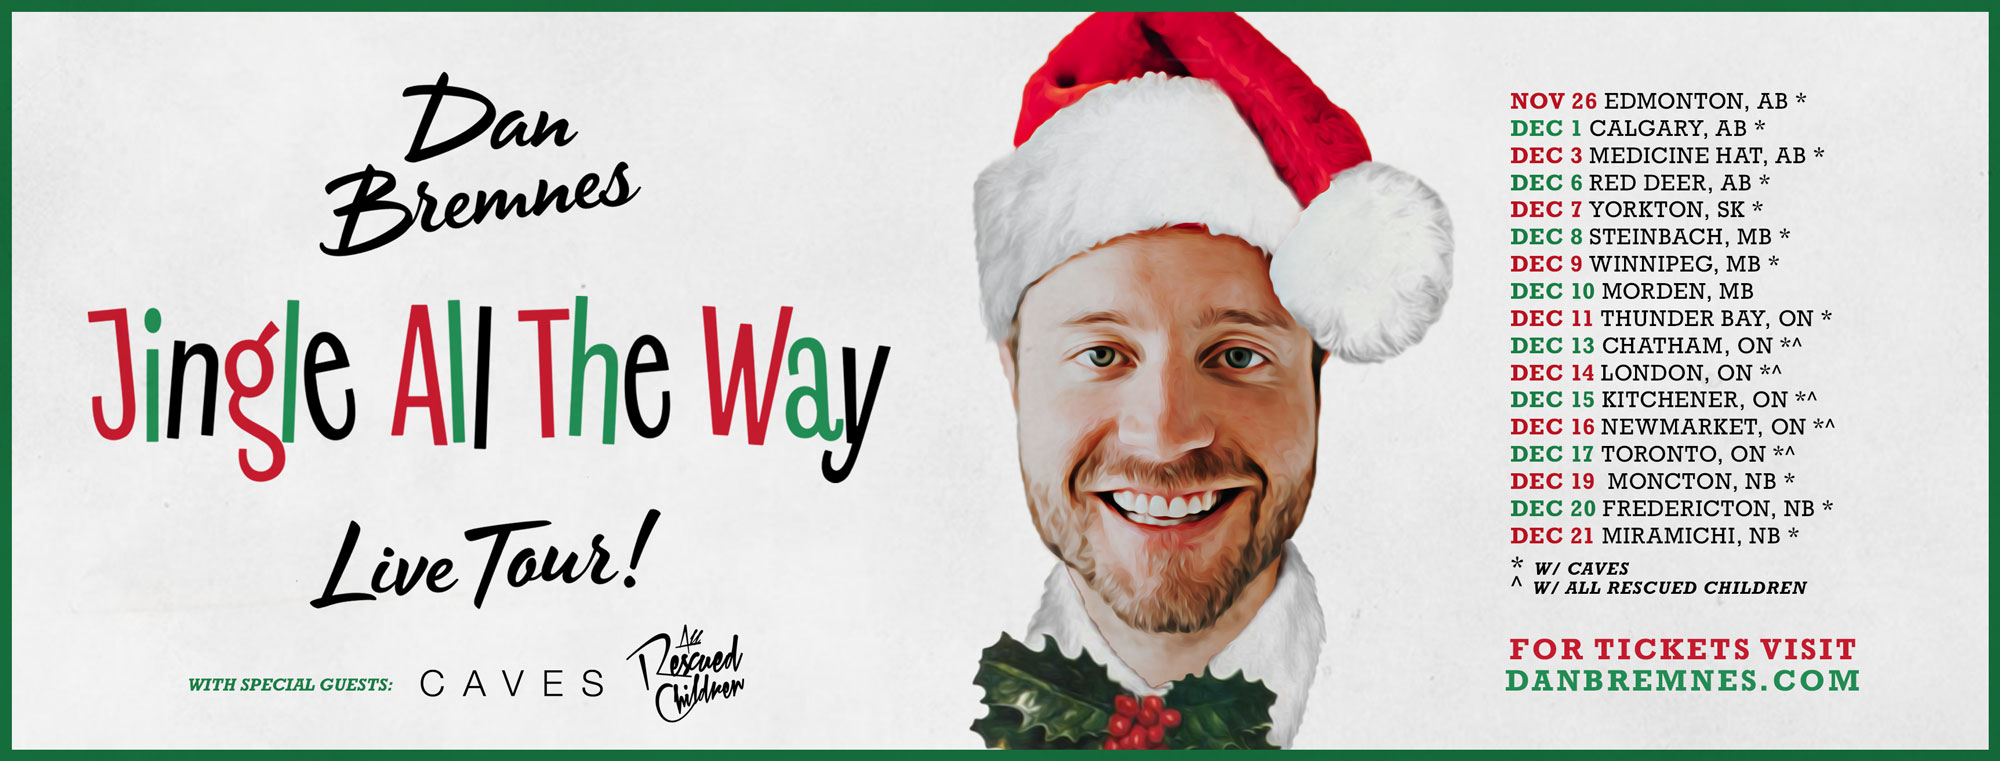 Tickets for Dan Bremnes, Jingle All The Way Tour in Medicine Hat from BuzzTix